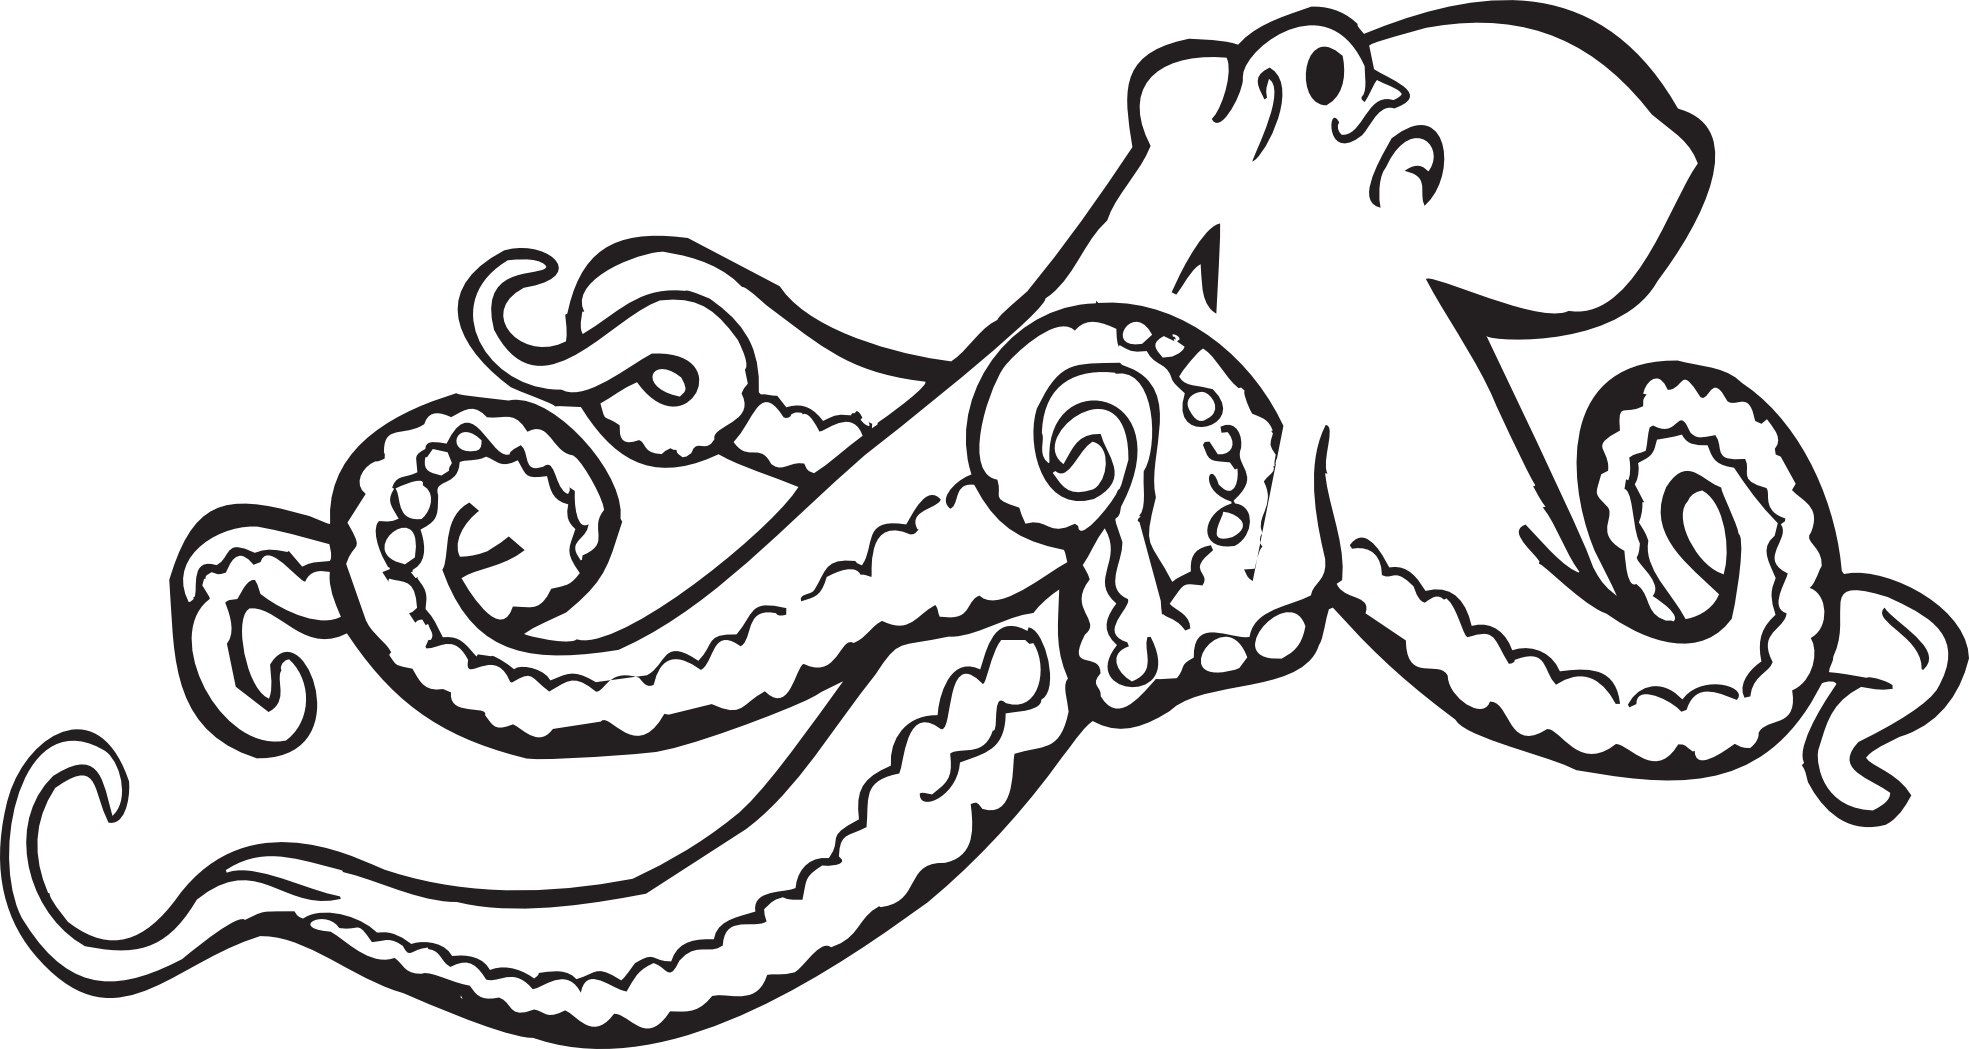 scholarship drawing octopus